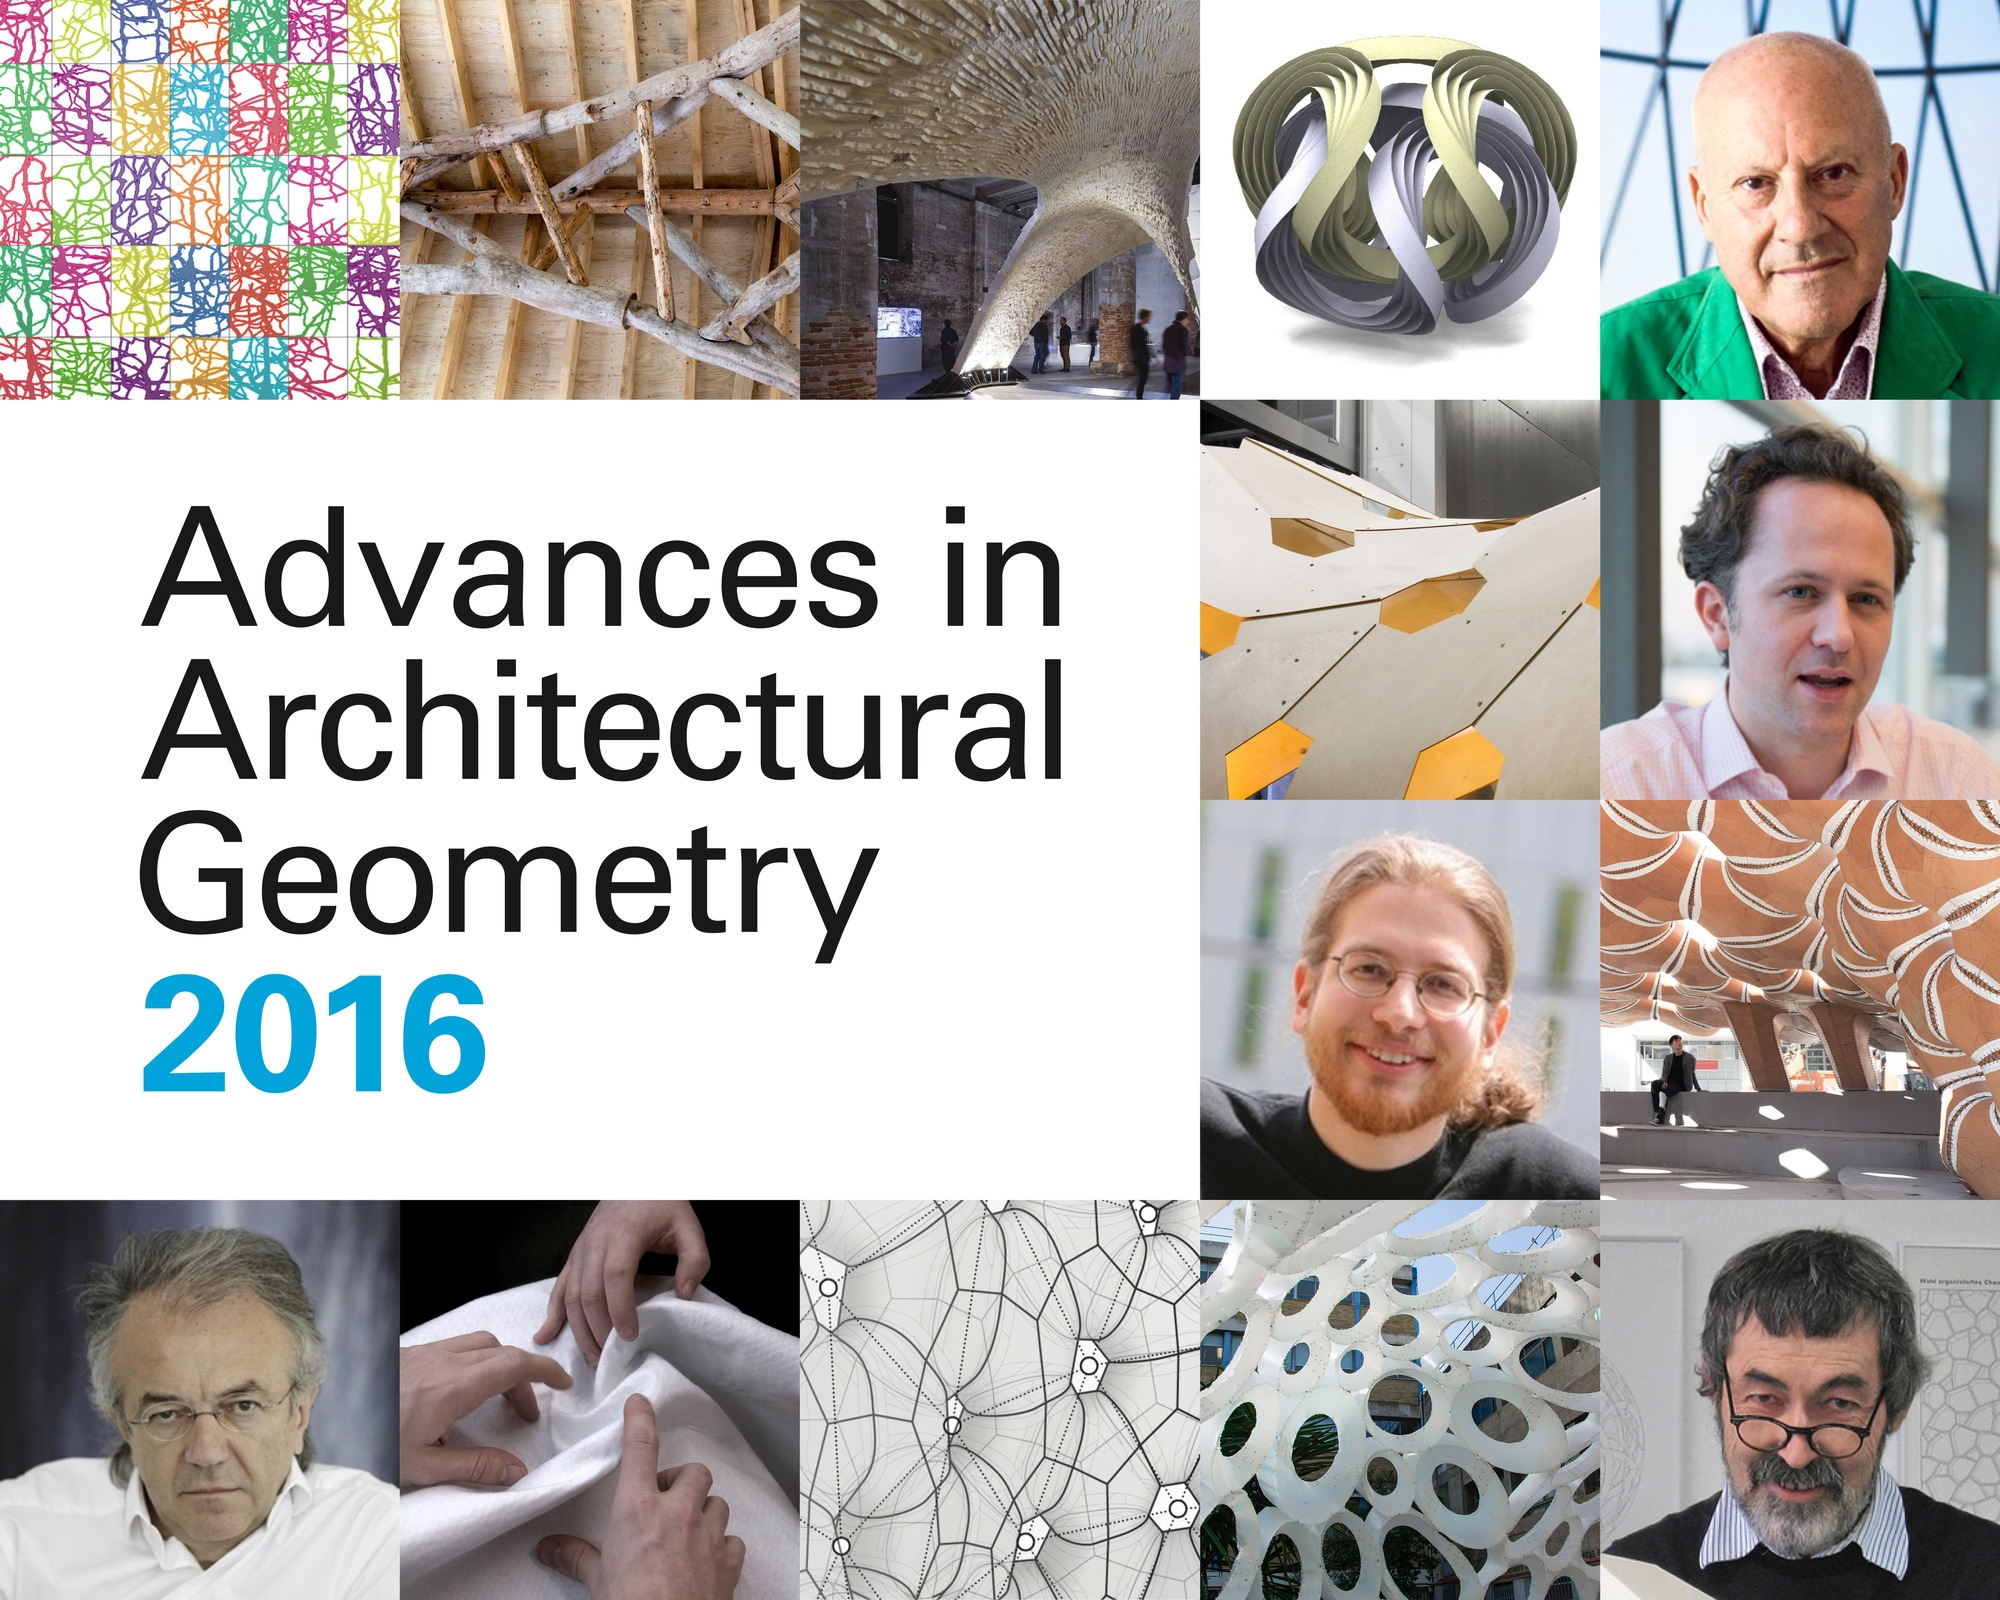 Advances in Architectural Geometry 2016 Symposium